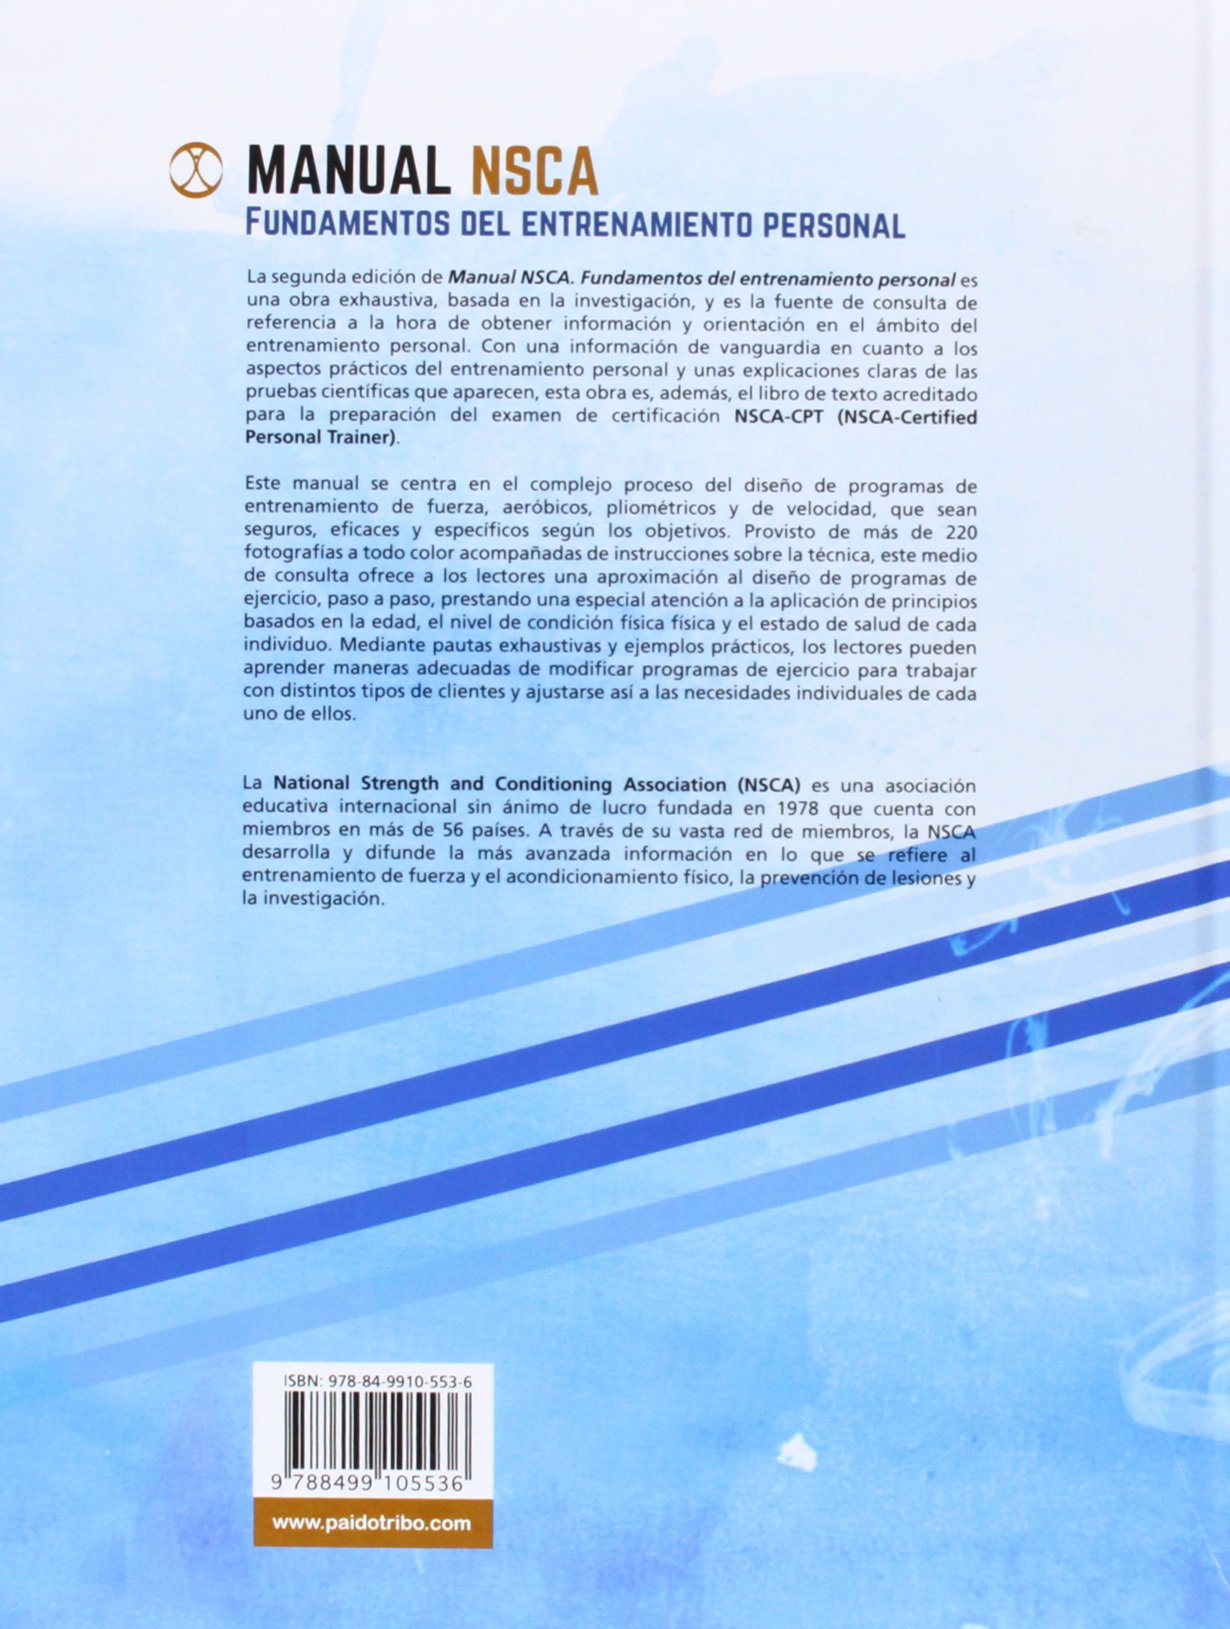 Manual NSCA: Fundamentos del entrenamiento personal: Amazon.co.uk: Moh H.  Malek Jared W. Coburn: 9788499105536: Books